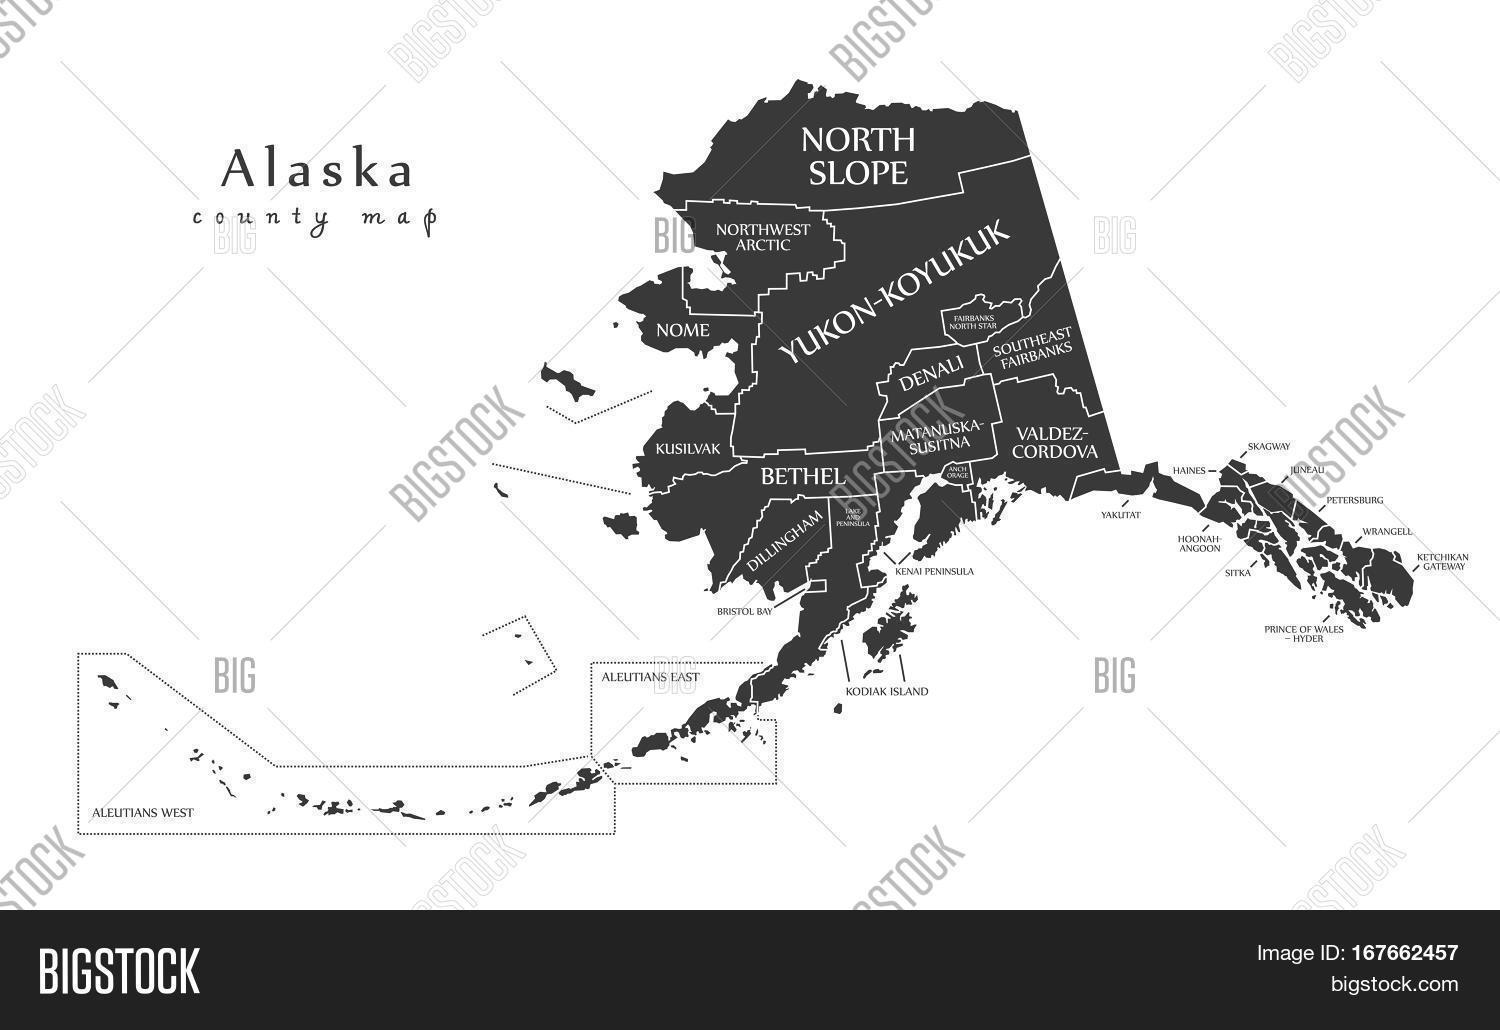 Alaska haines county - Modern Map Alaska County Map With Labels Usa Illustration